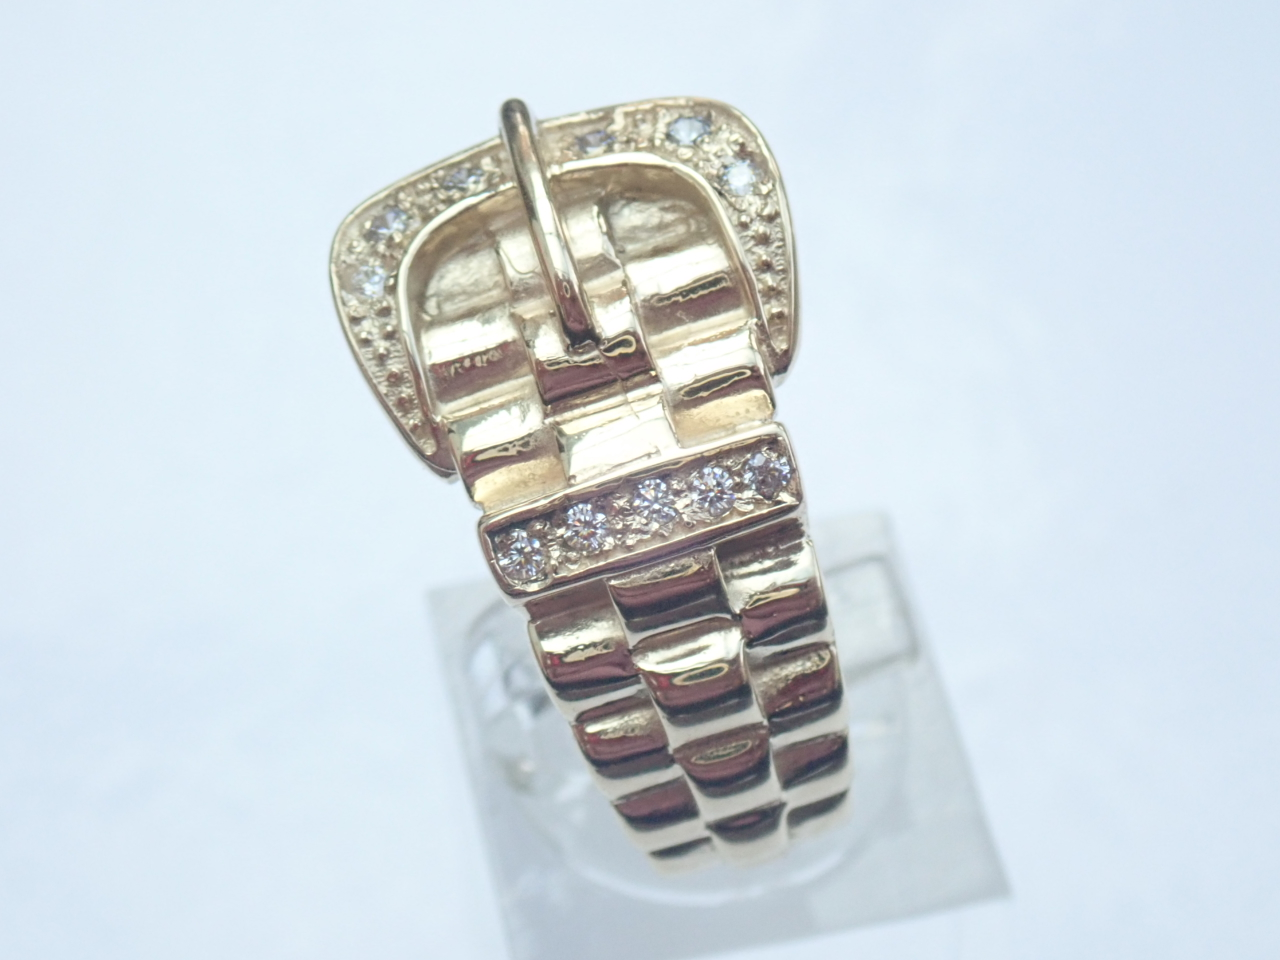 375 Cubic Zirconia Buckle Ring 9ct yellow gold- 10.01gms Size W #230